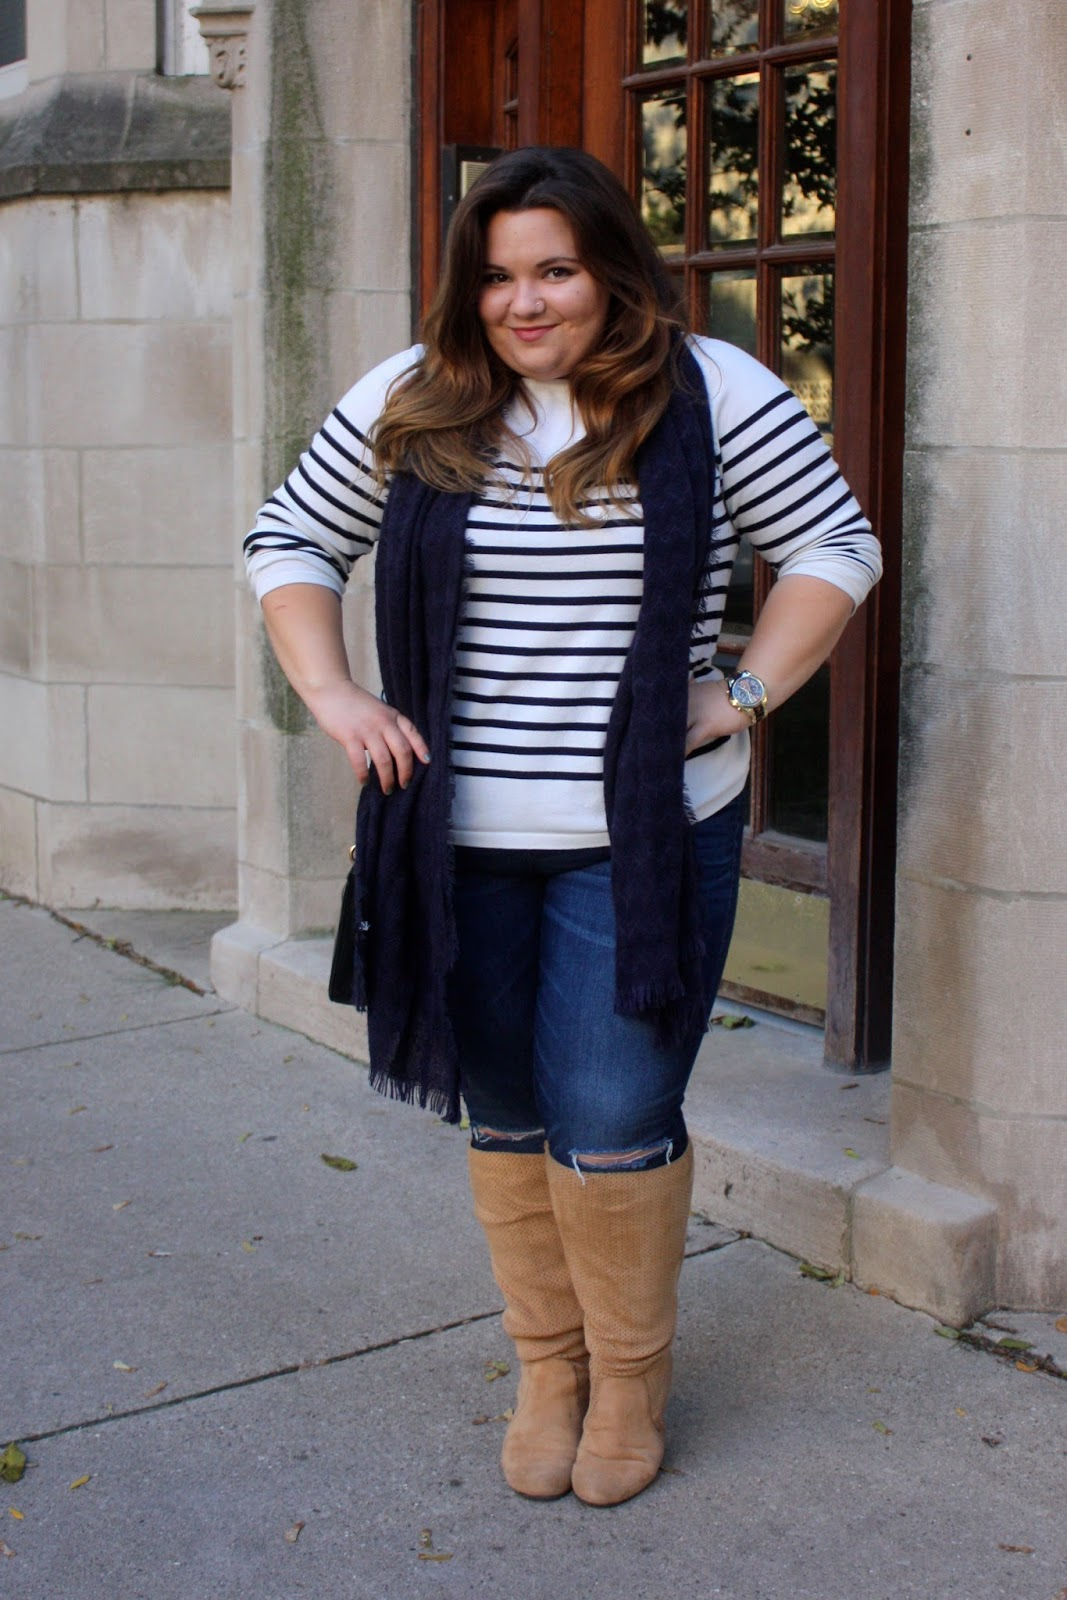 how to cut holes in jeans, cut holes in the knees, CAN CURVY GIRLS WEAR HORIZONTAL STRIPES, plus size, horizontal stripes, how to wear stripes, plus size fashion blogger, fashion blogger, natalie craig, natalie in the city, chicago, wide calf boots, striped sweaters, fall fashion, how to wear a scarf